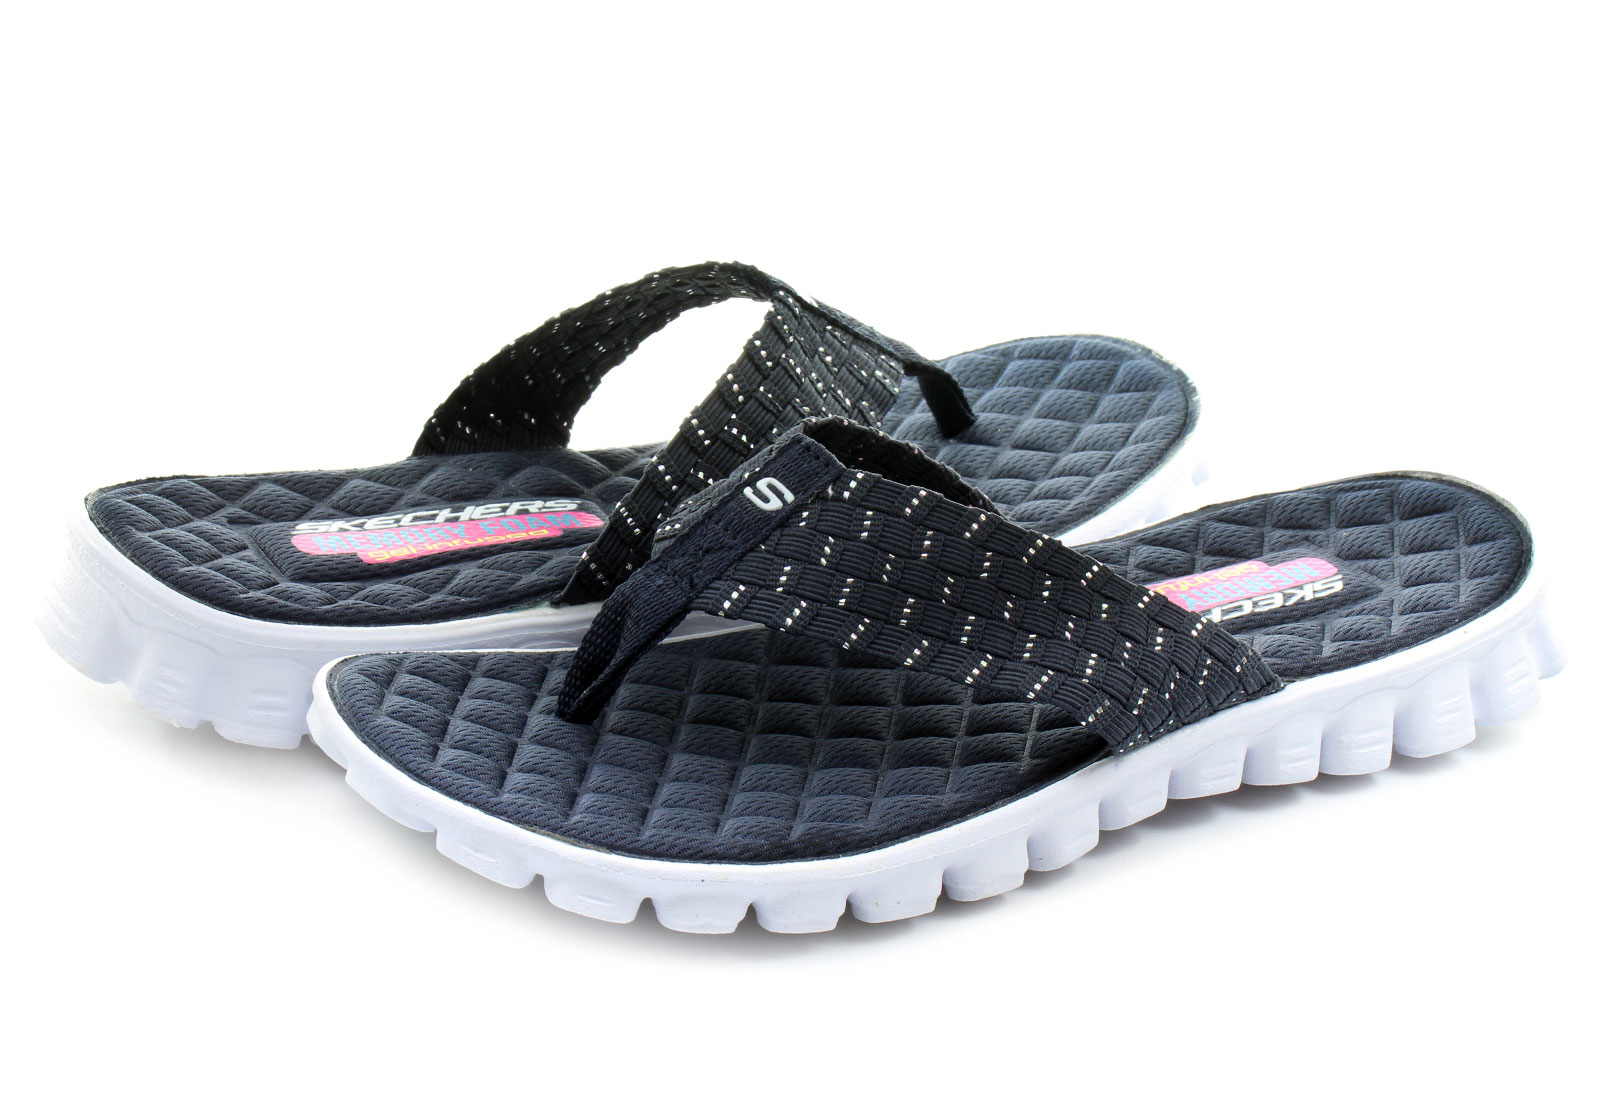 Buy Skechers Women's Shape Ups Strength Fitness Walking Sneaker and other Fashion Sneakers at bestnfil5d.ga Our wide selection is eligible for free shipping and free returns.